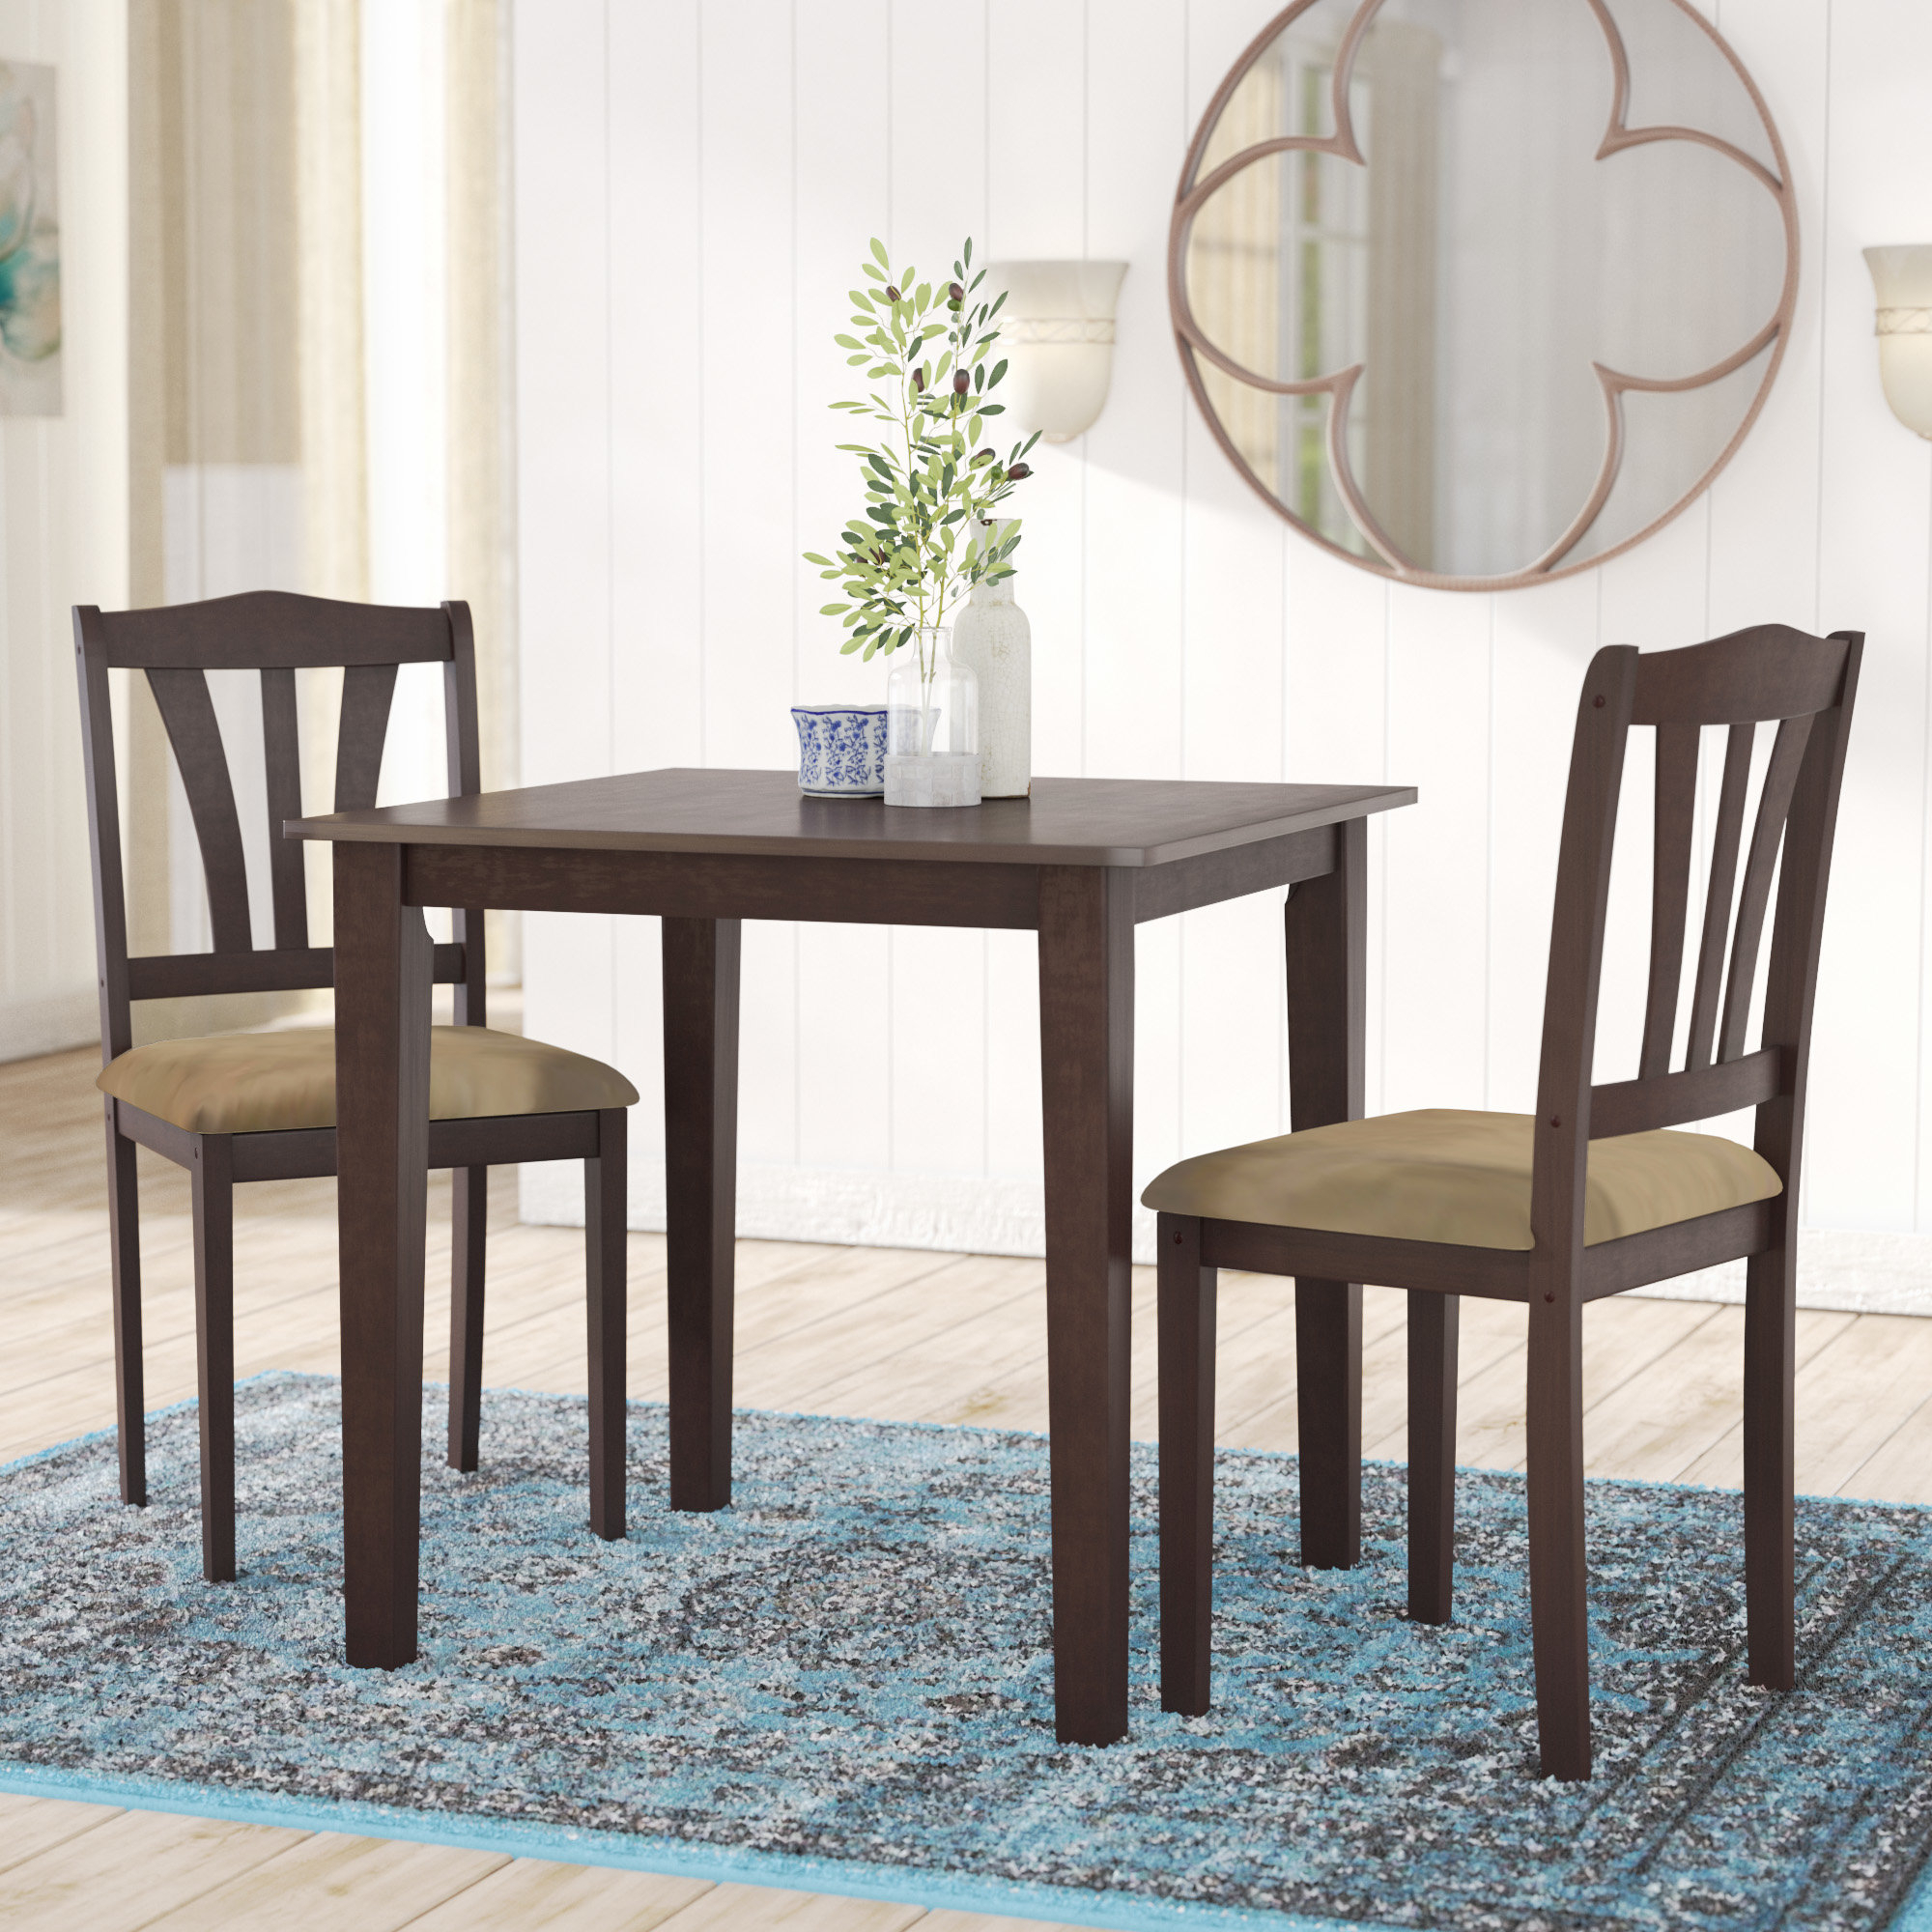 Alcott Hill Dinah 3 Piece Dining Set (View 11 of 25)